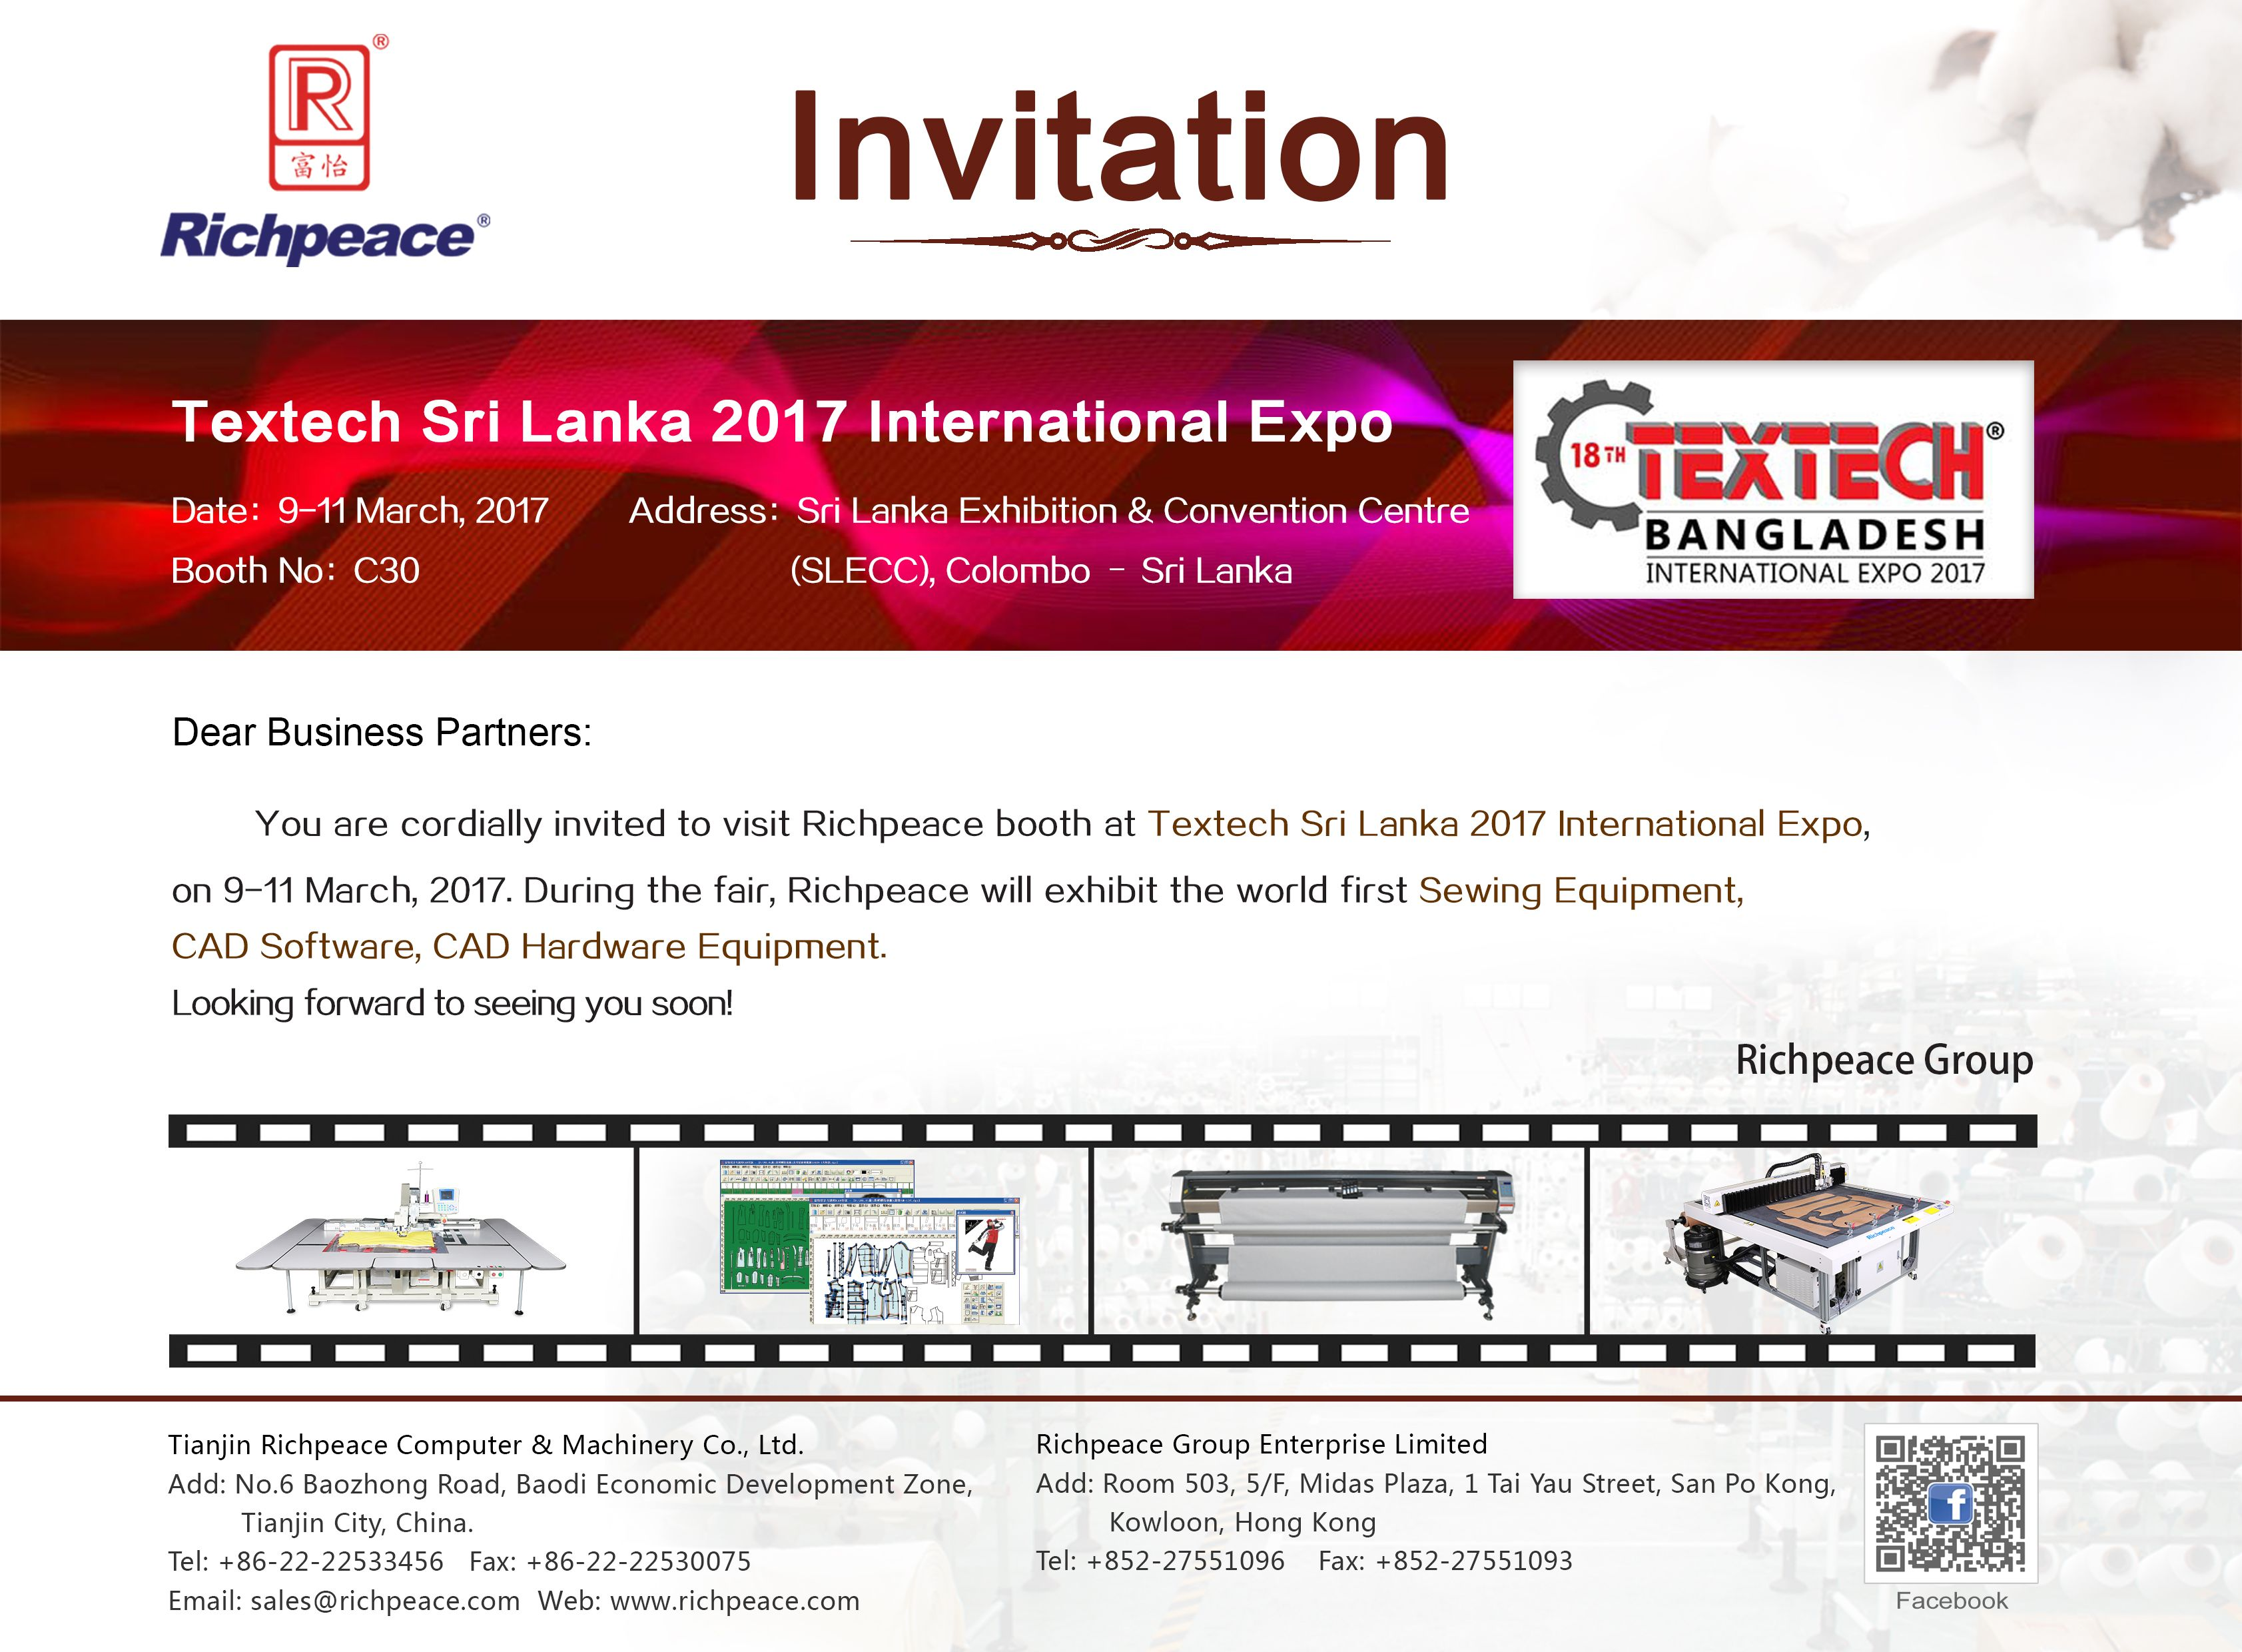 Richpeace sincerely invite you to visit the textech sri lanka 2017 richpeace sincerely invite you to visit the textech sri lanka 2017 international expo we will stopboris Choice Image